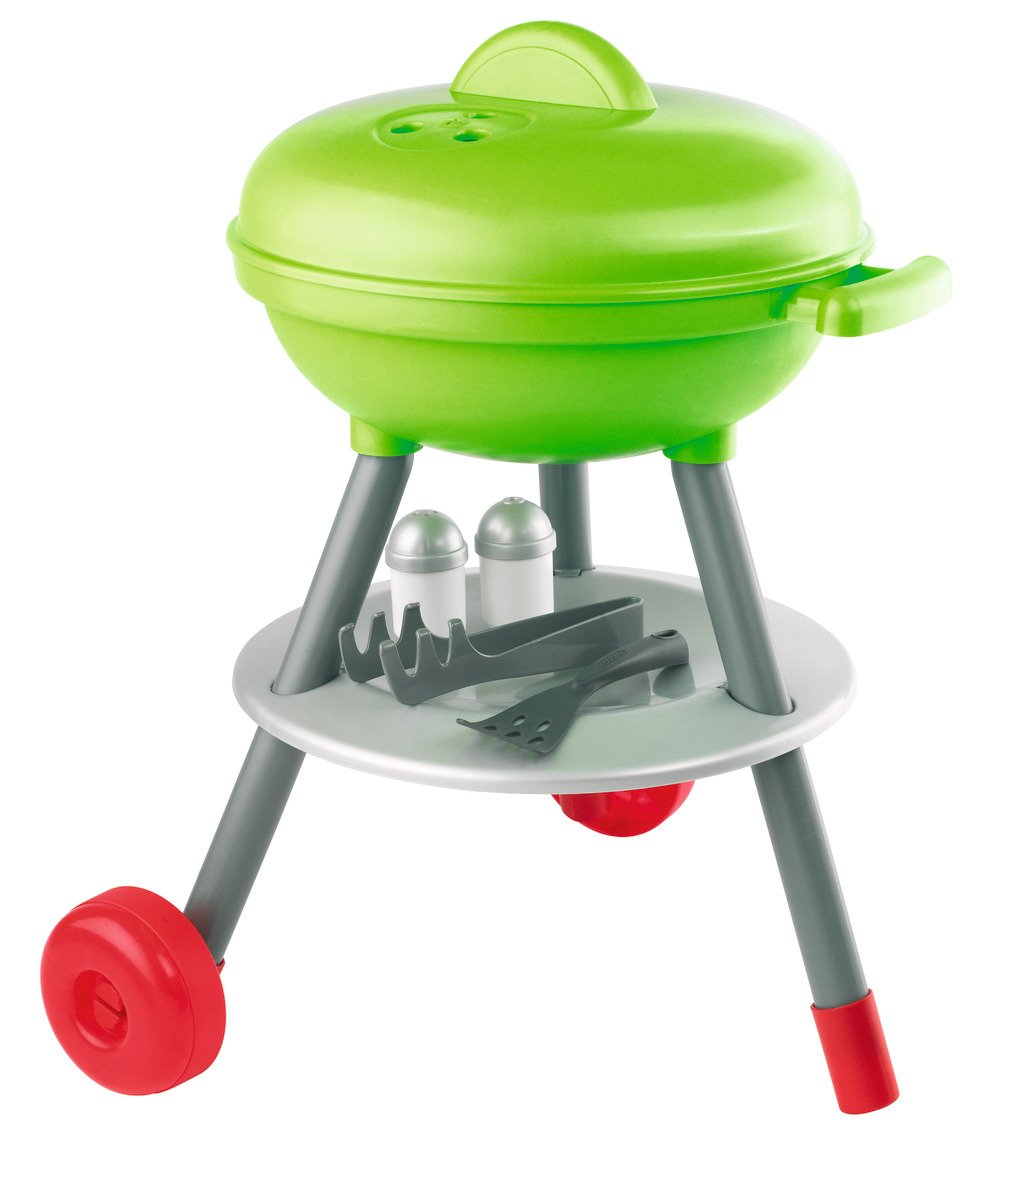 Ecoiffier Barbecue Set